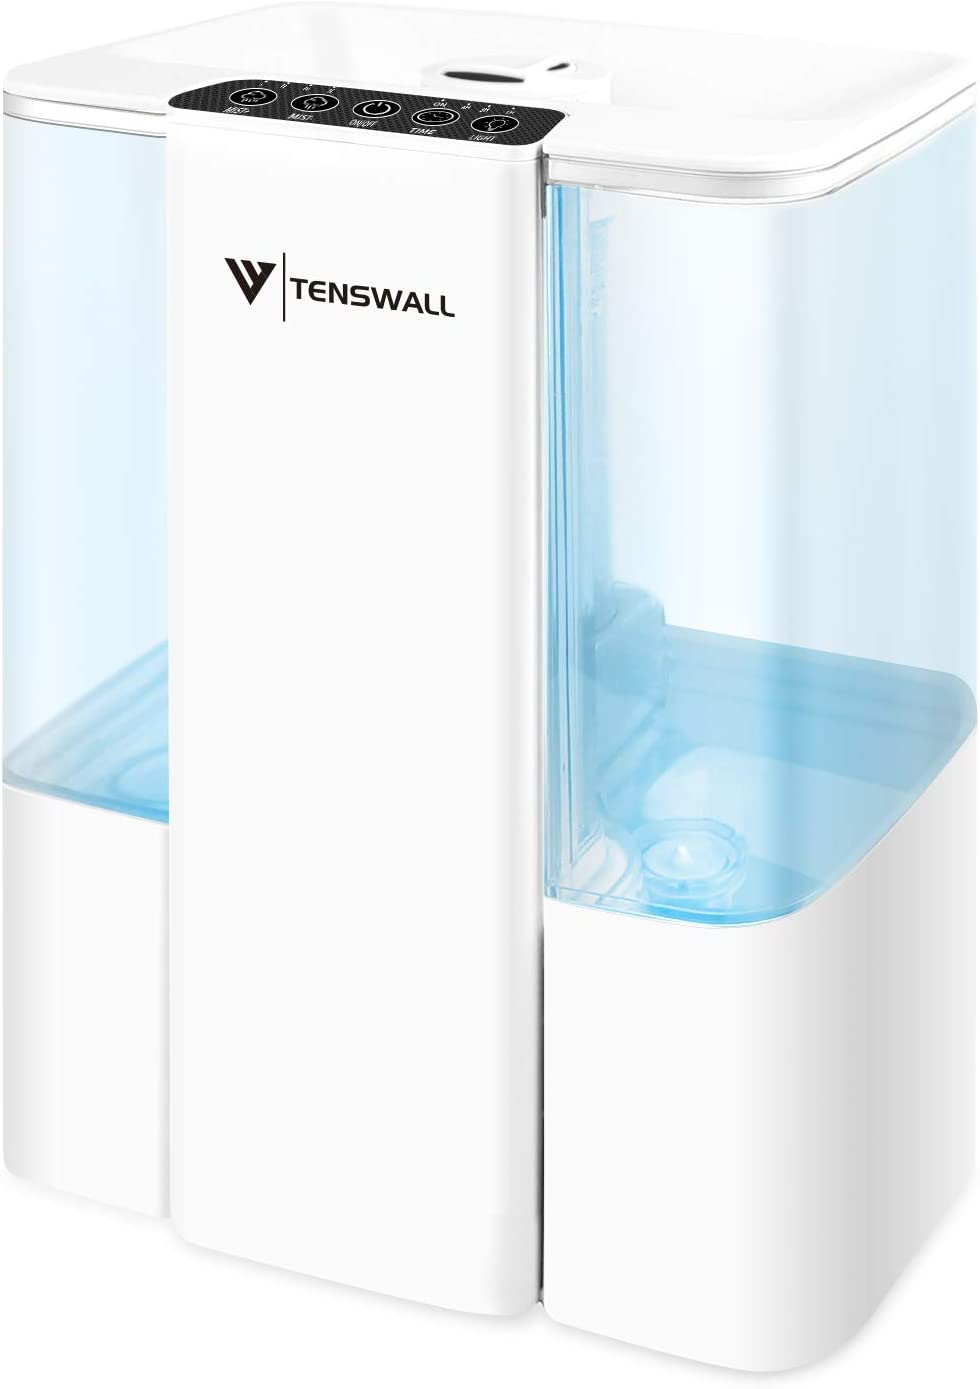 Tenswall Cool Mist Humidifier, 5L Ultrasonic Humidifiers Last 48 Hours for Home, Baby, Large Room, Adjustable Mist Output, 360°Nozzle Quiet Operation Humidifier, Auto Shut Off,Easy to Clean (White)